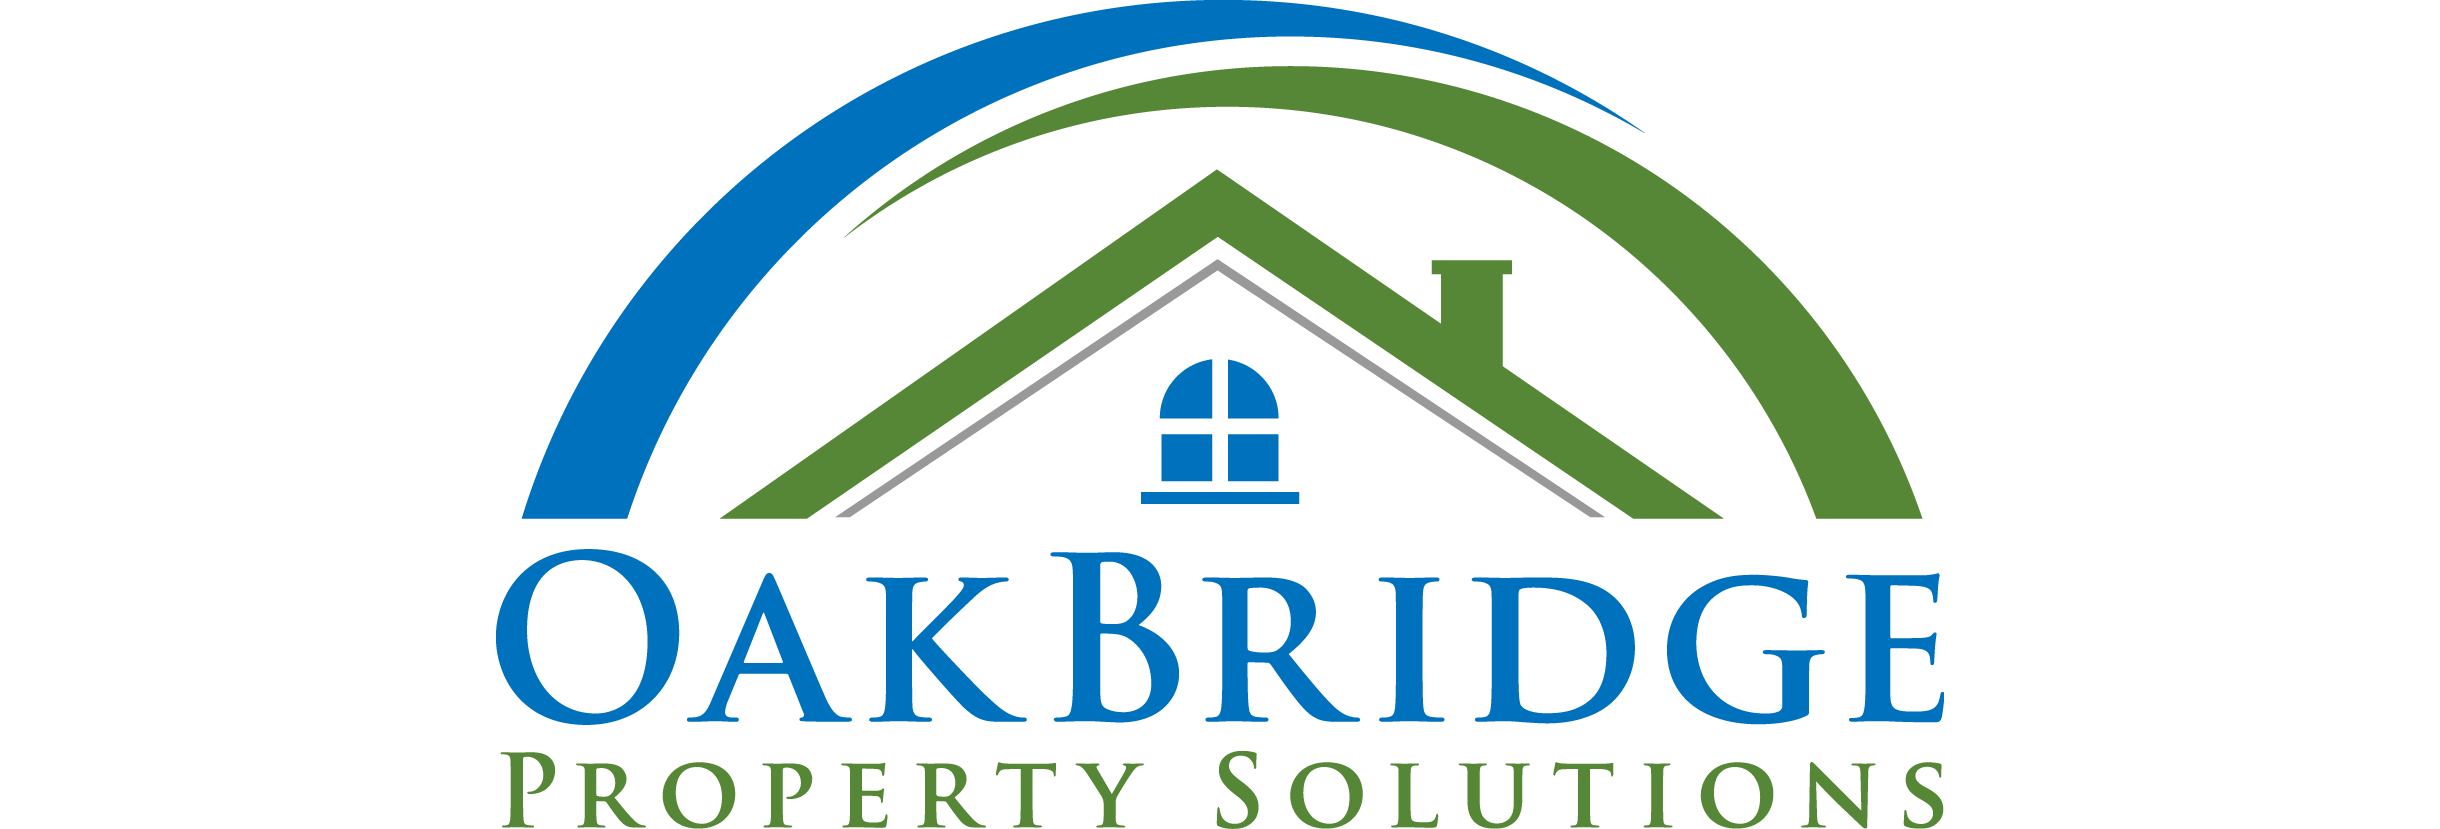 OakBridge Property Solutions LLC